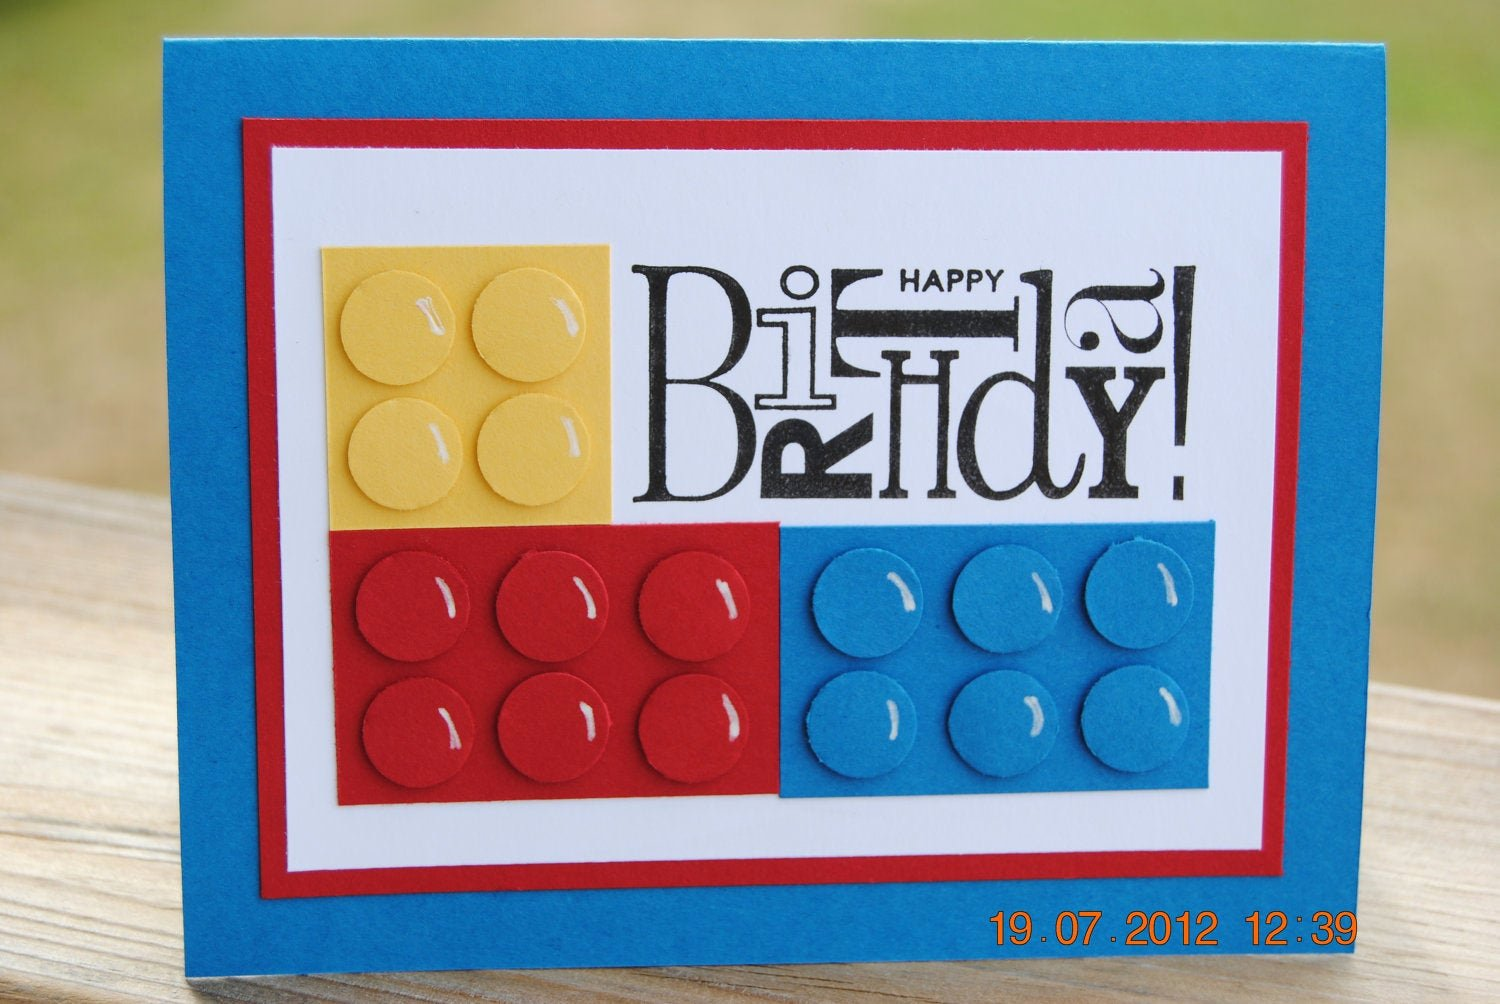 Lego Birthday Card Printable New Handcrafted Kids Building Block Style Building Block Birthday